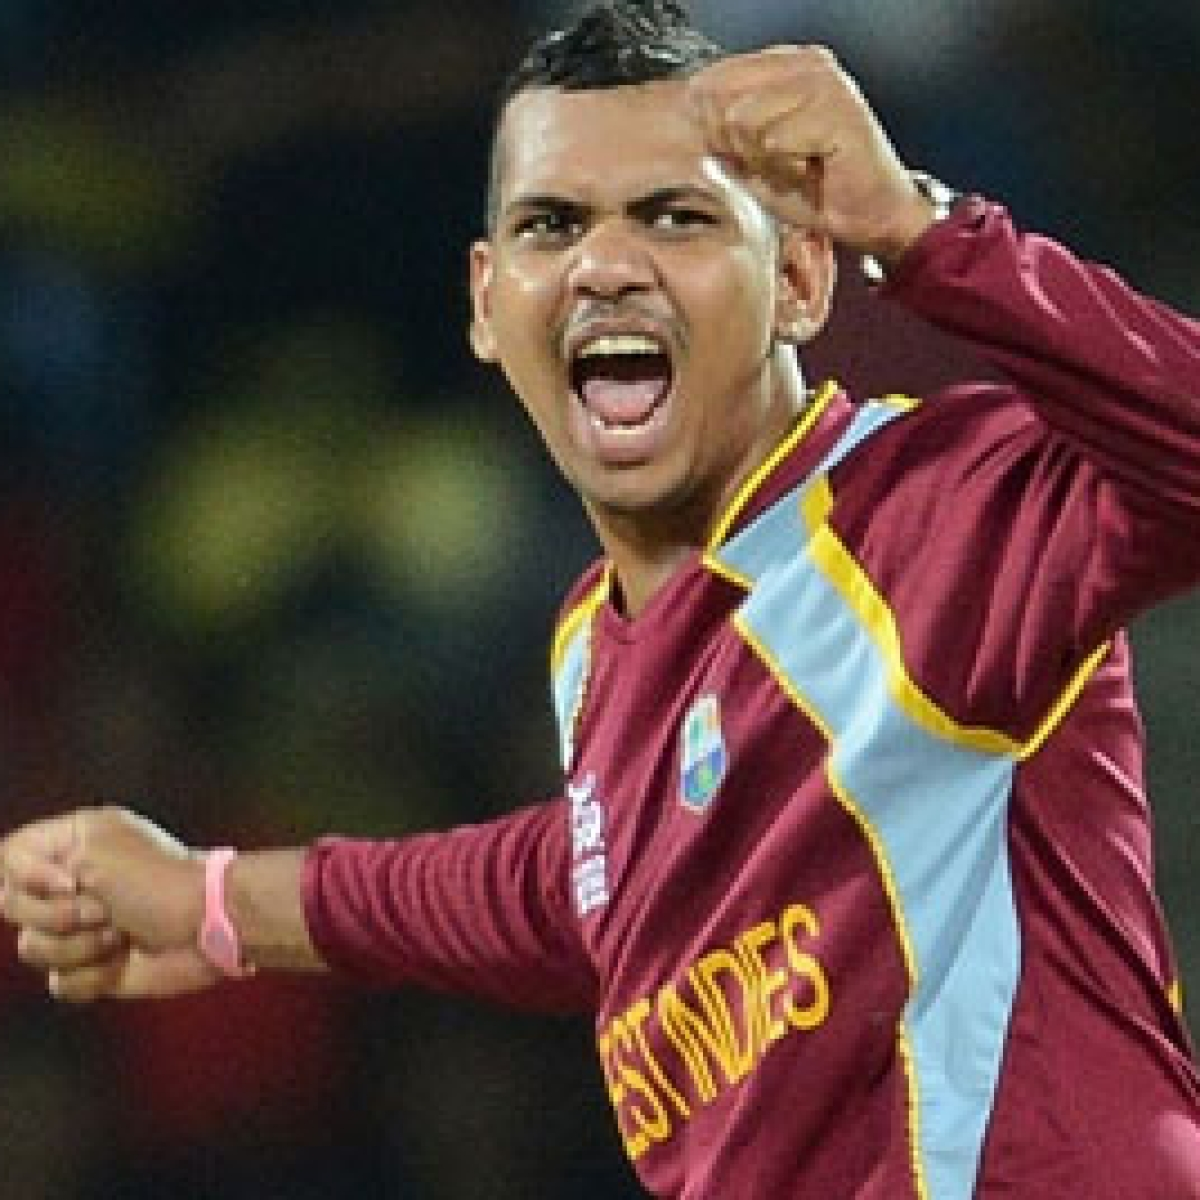 Willing to play for any team owned by Kolkata Knight Riders, says West Indies bowler Sunil Narine